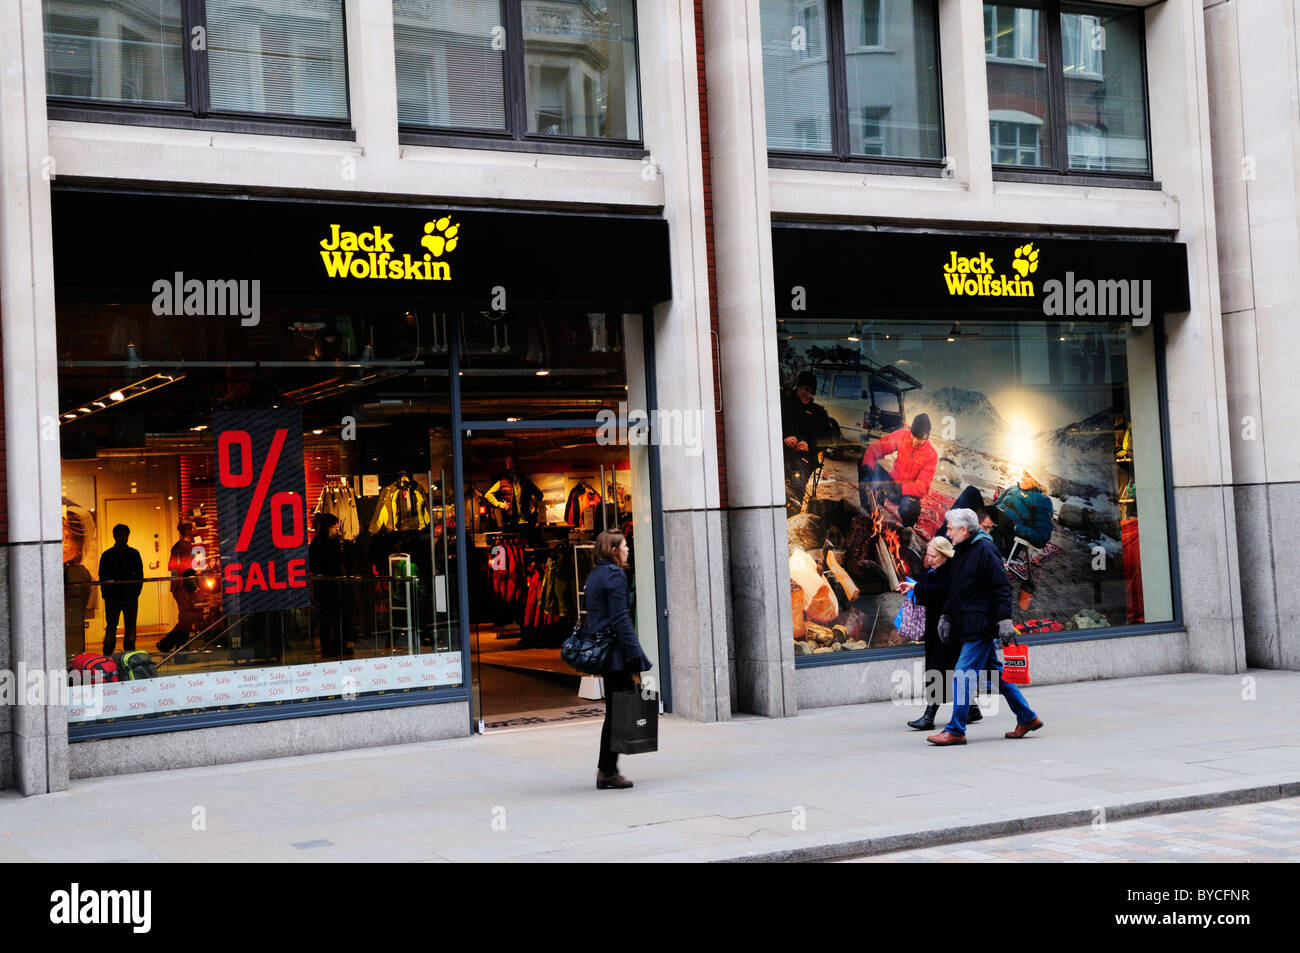 buy popular e3394 65057 Jack Wolfskin Outdoor Clothing Shop, Long Acre, Covent ...